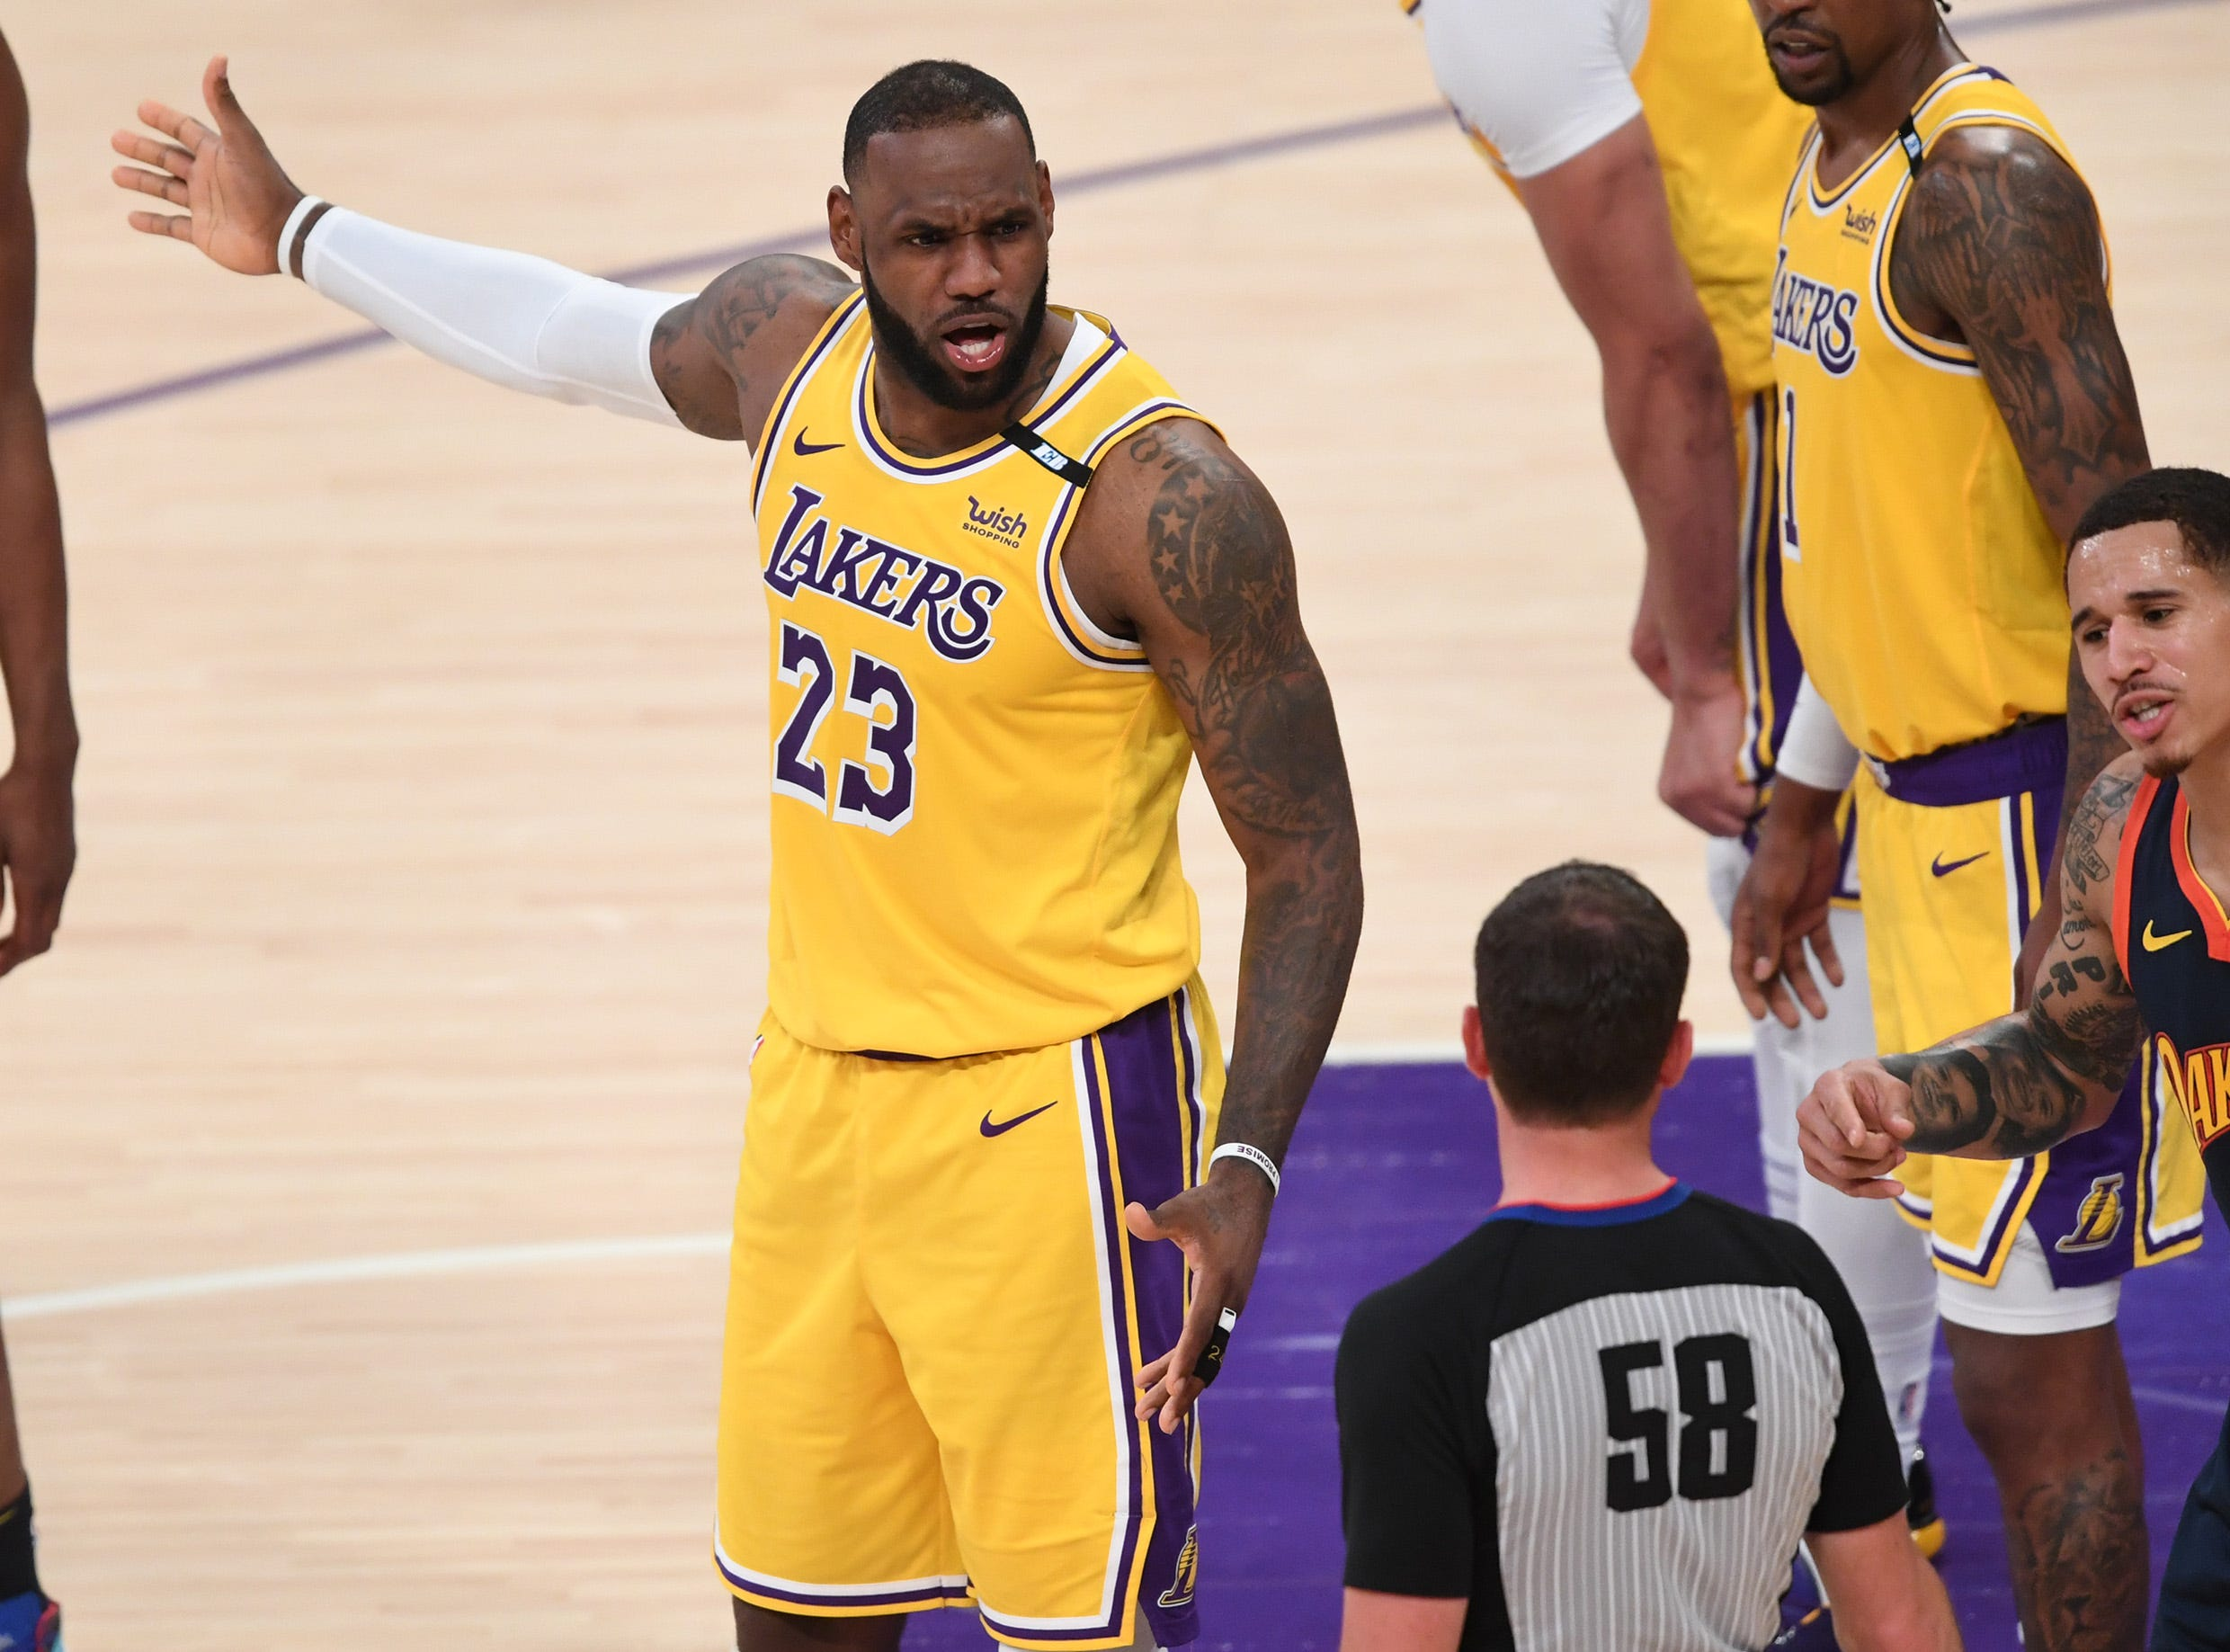 NBA bubble fatigue: LeBron James would rather retire than play for Orlando Magic